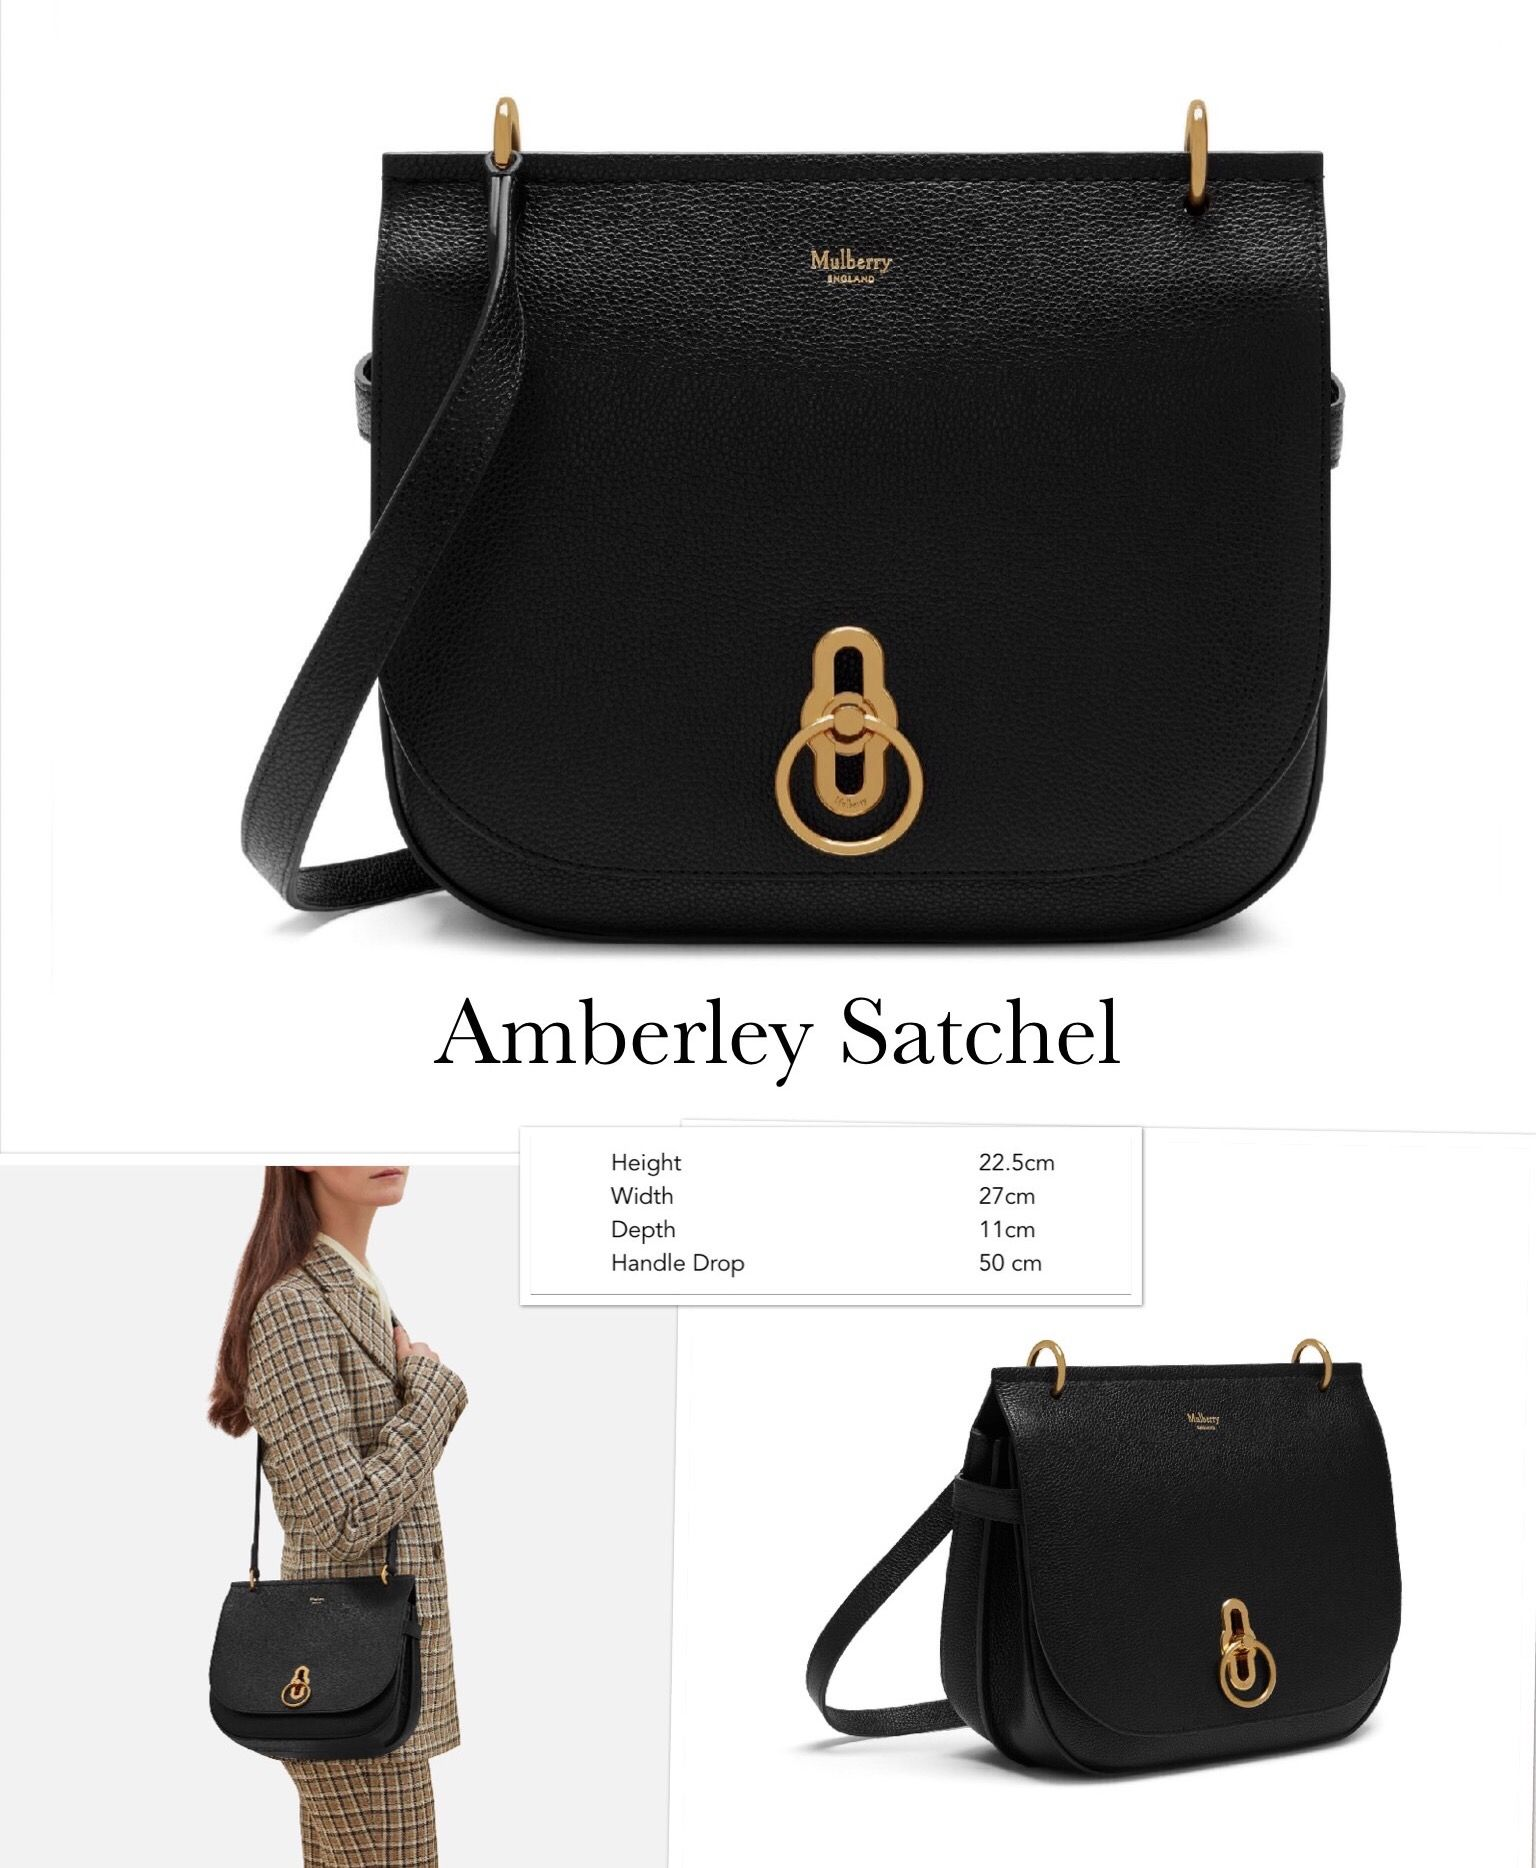 Amberley Satchel. AW17. €1.095   Mulberry   Pinterest   Bags ... ad342260b1